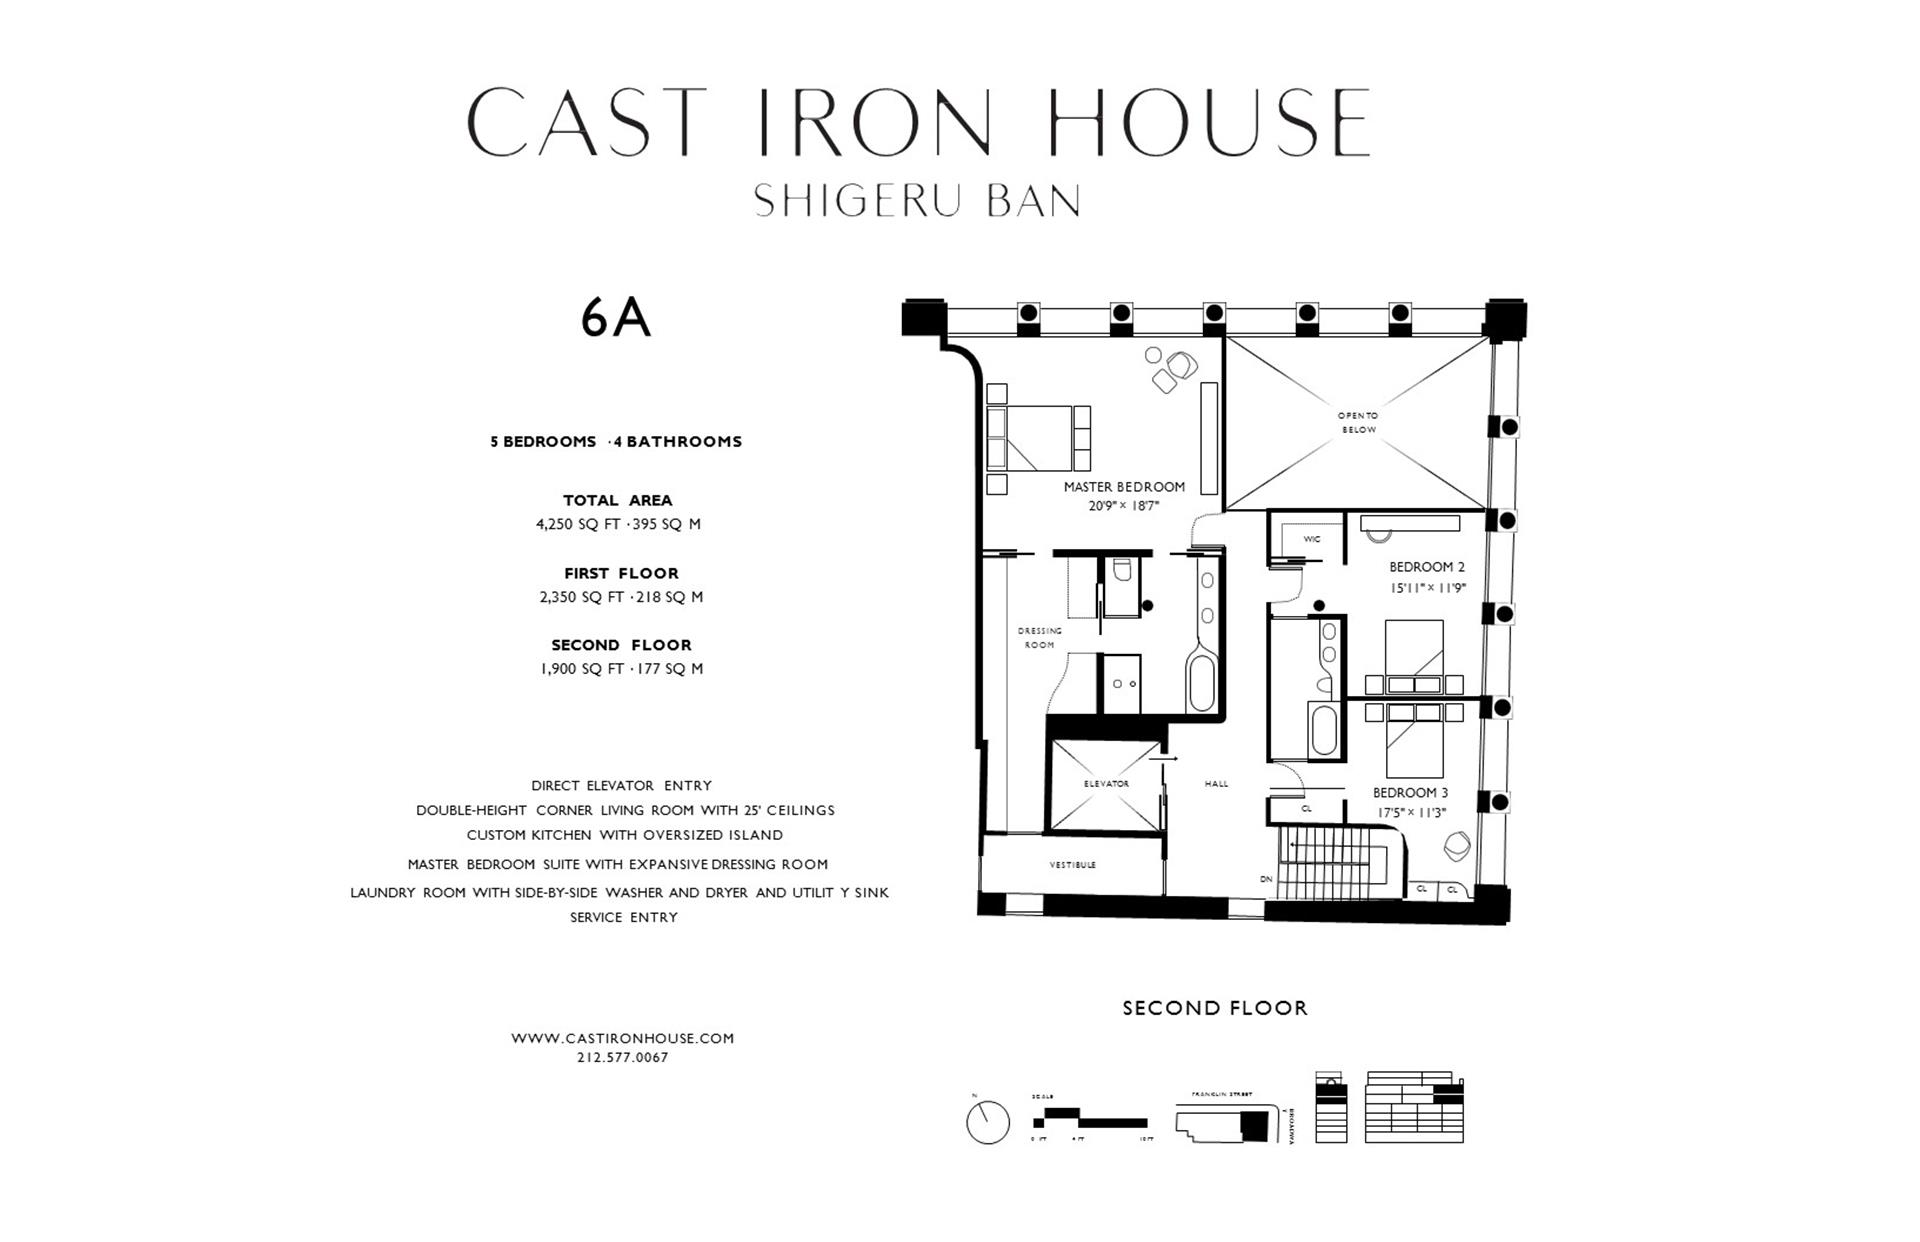 Floor plan of 67 Franklin St, 6A - TriBeCa, New York